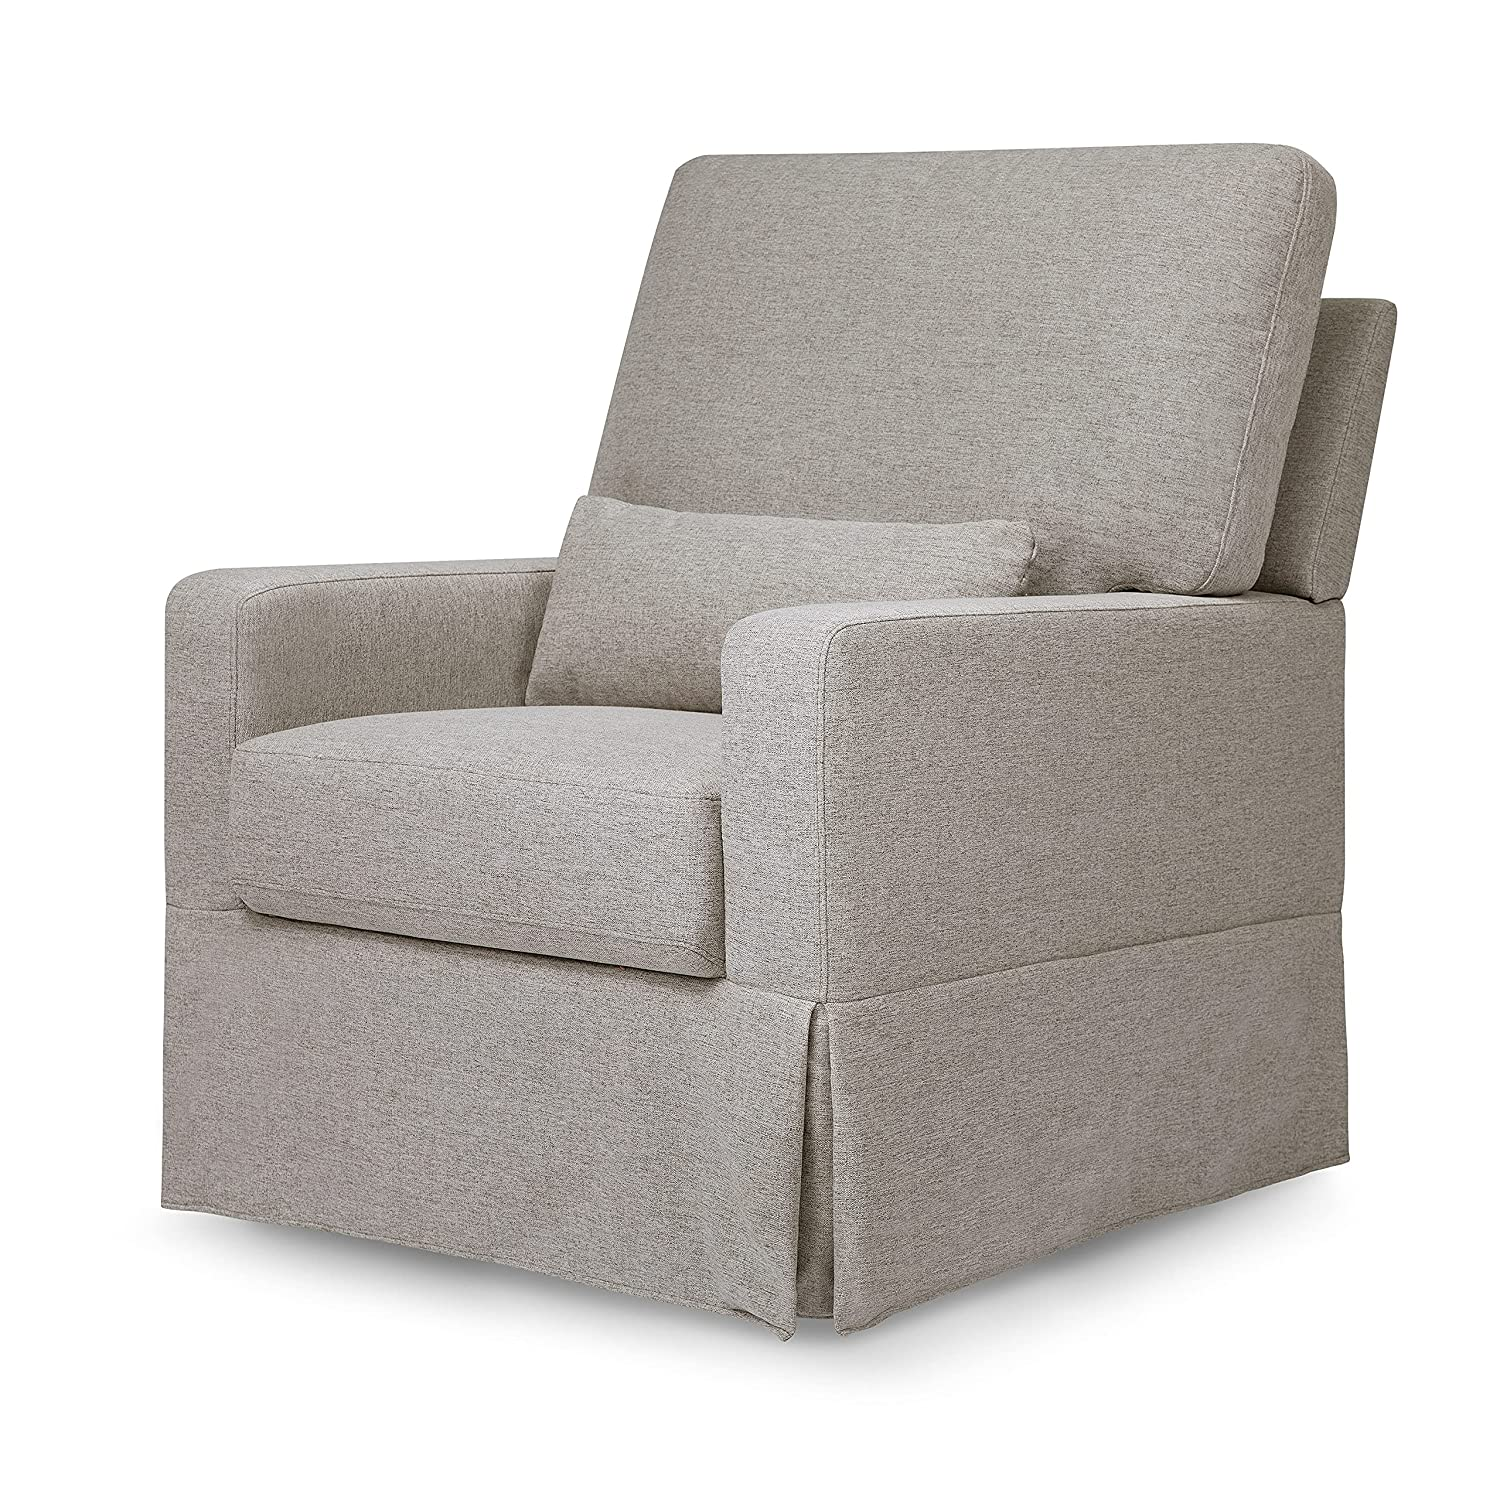 Million Dollar Sale item Baby Fixed price for sale Classic Crawford Comfort G Swivel Pillowback